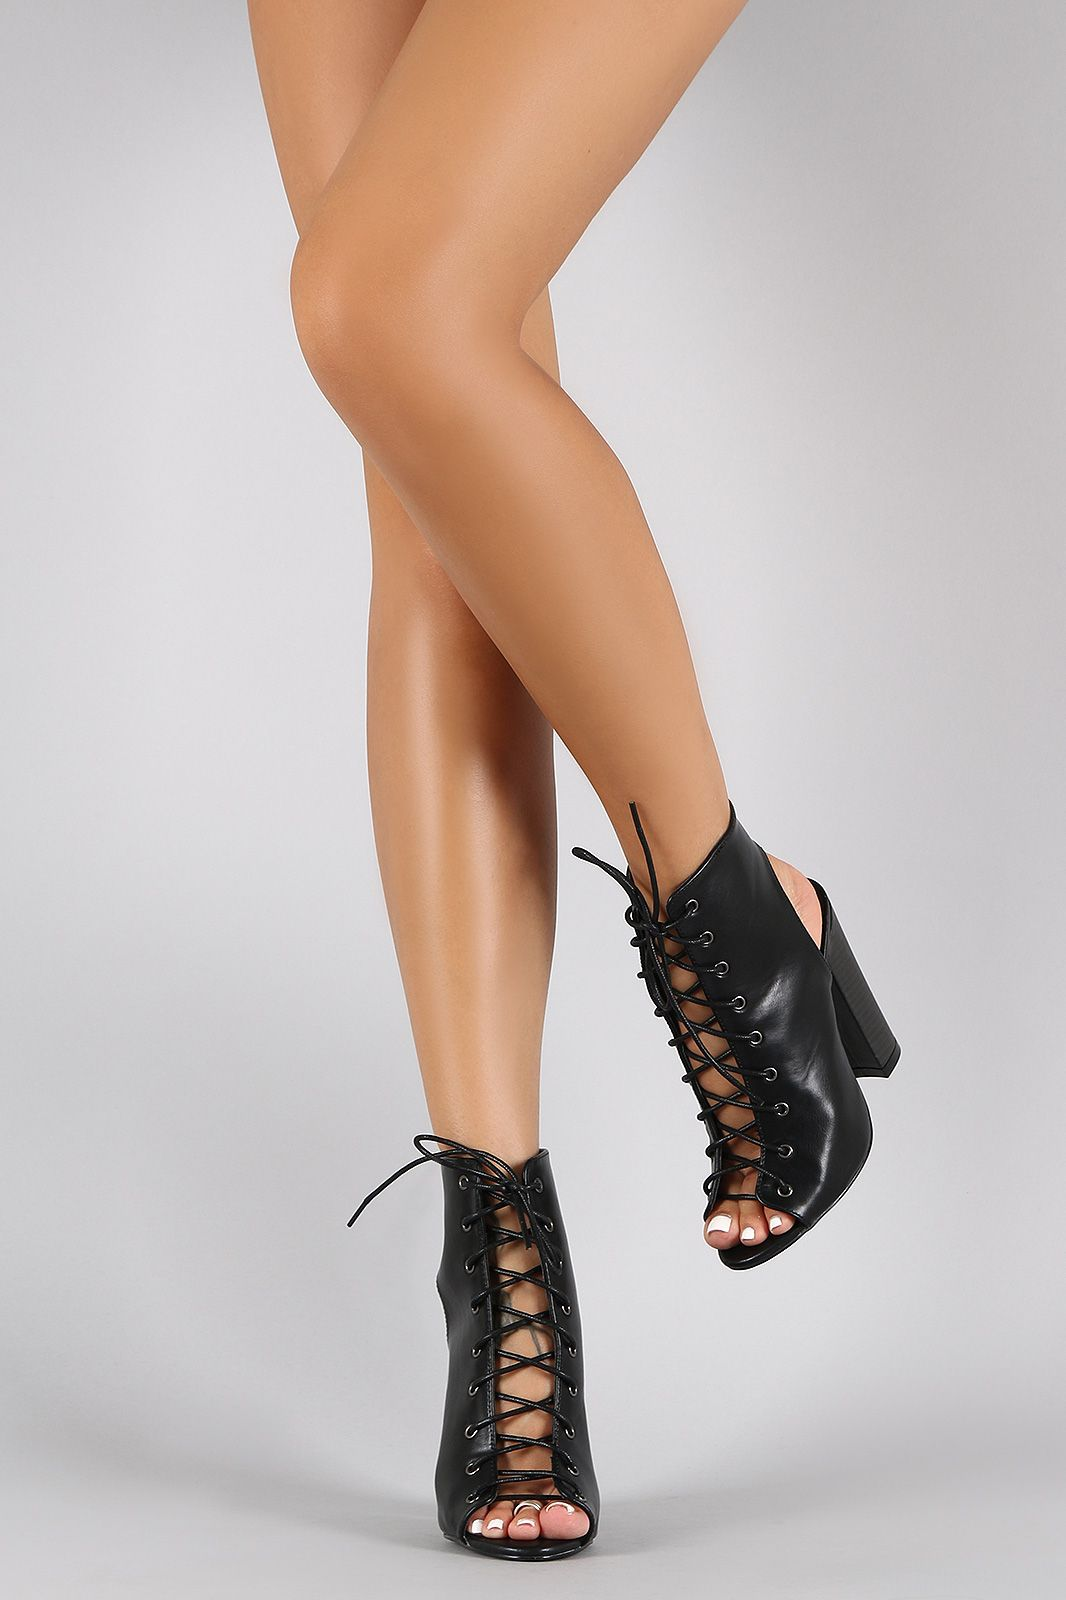 Suede Strappy Corset Lace Up Stiletto Heel  cWmuseoT